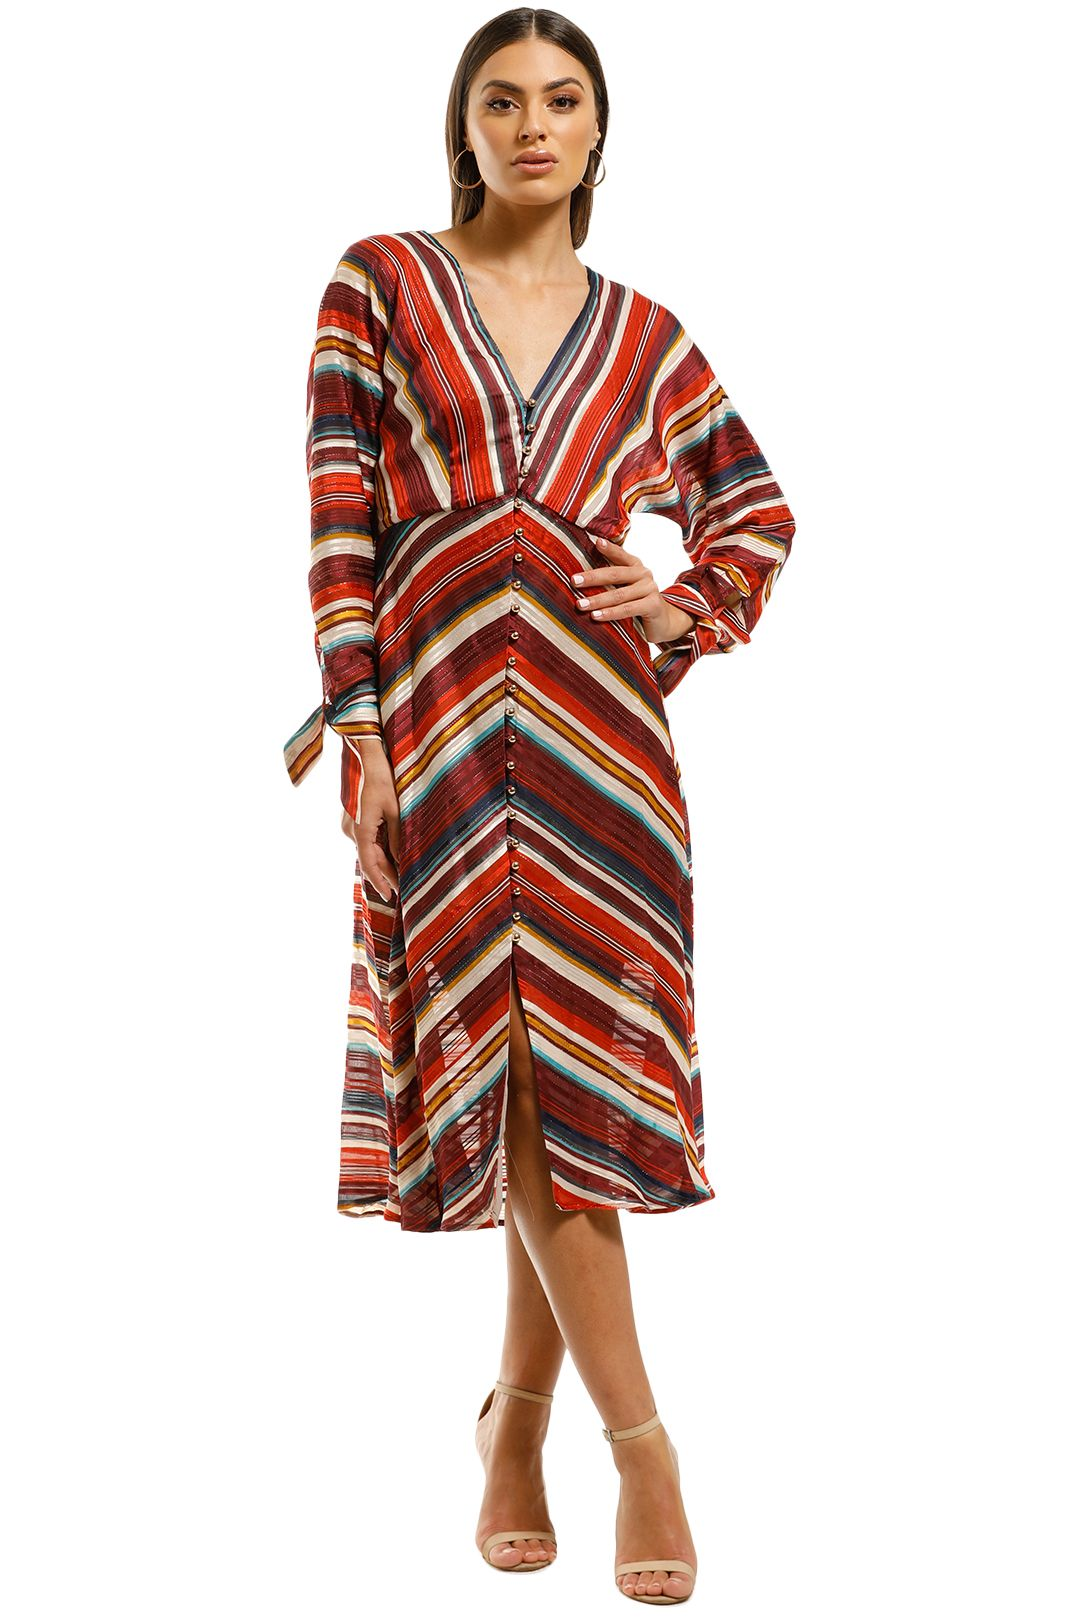 Elliatt-Edie-Dress-Multi-Stripes-Front